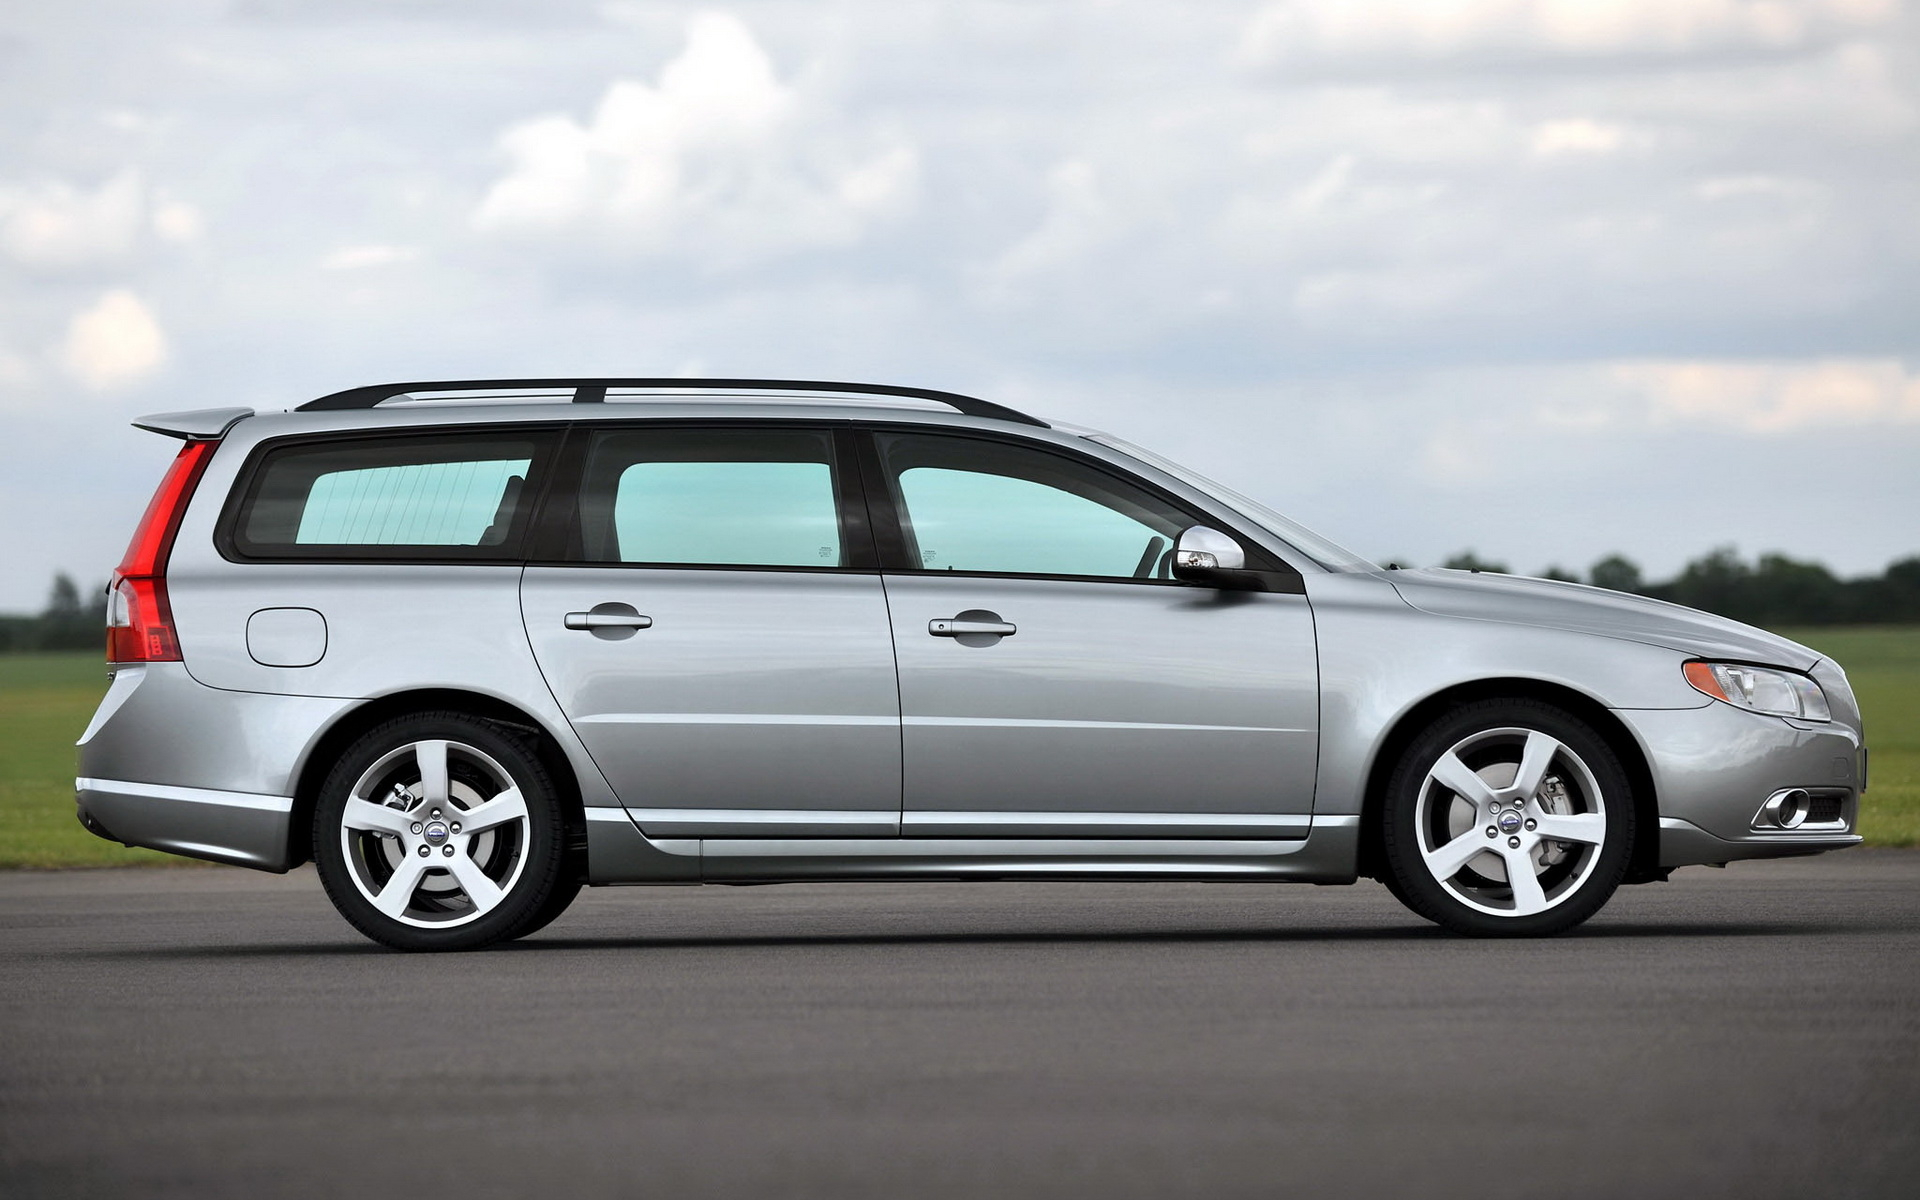 Volvo V70 R design wallpapers and images   wallpapers pictures 1920x1200